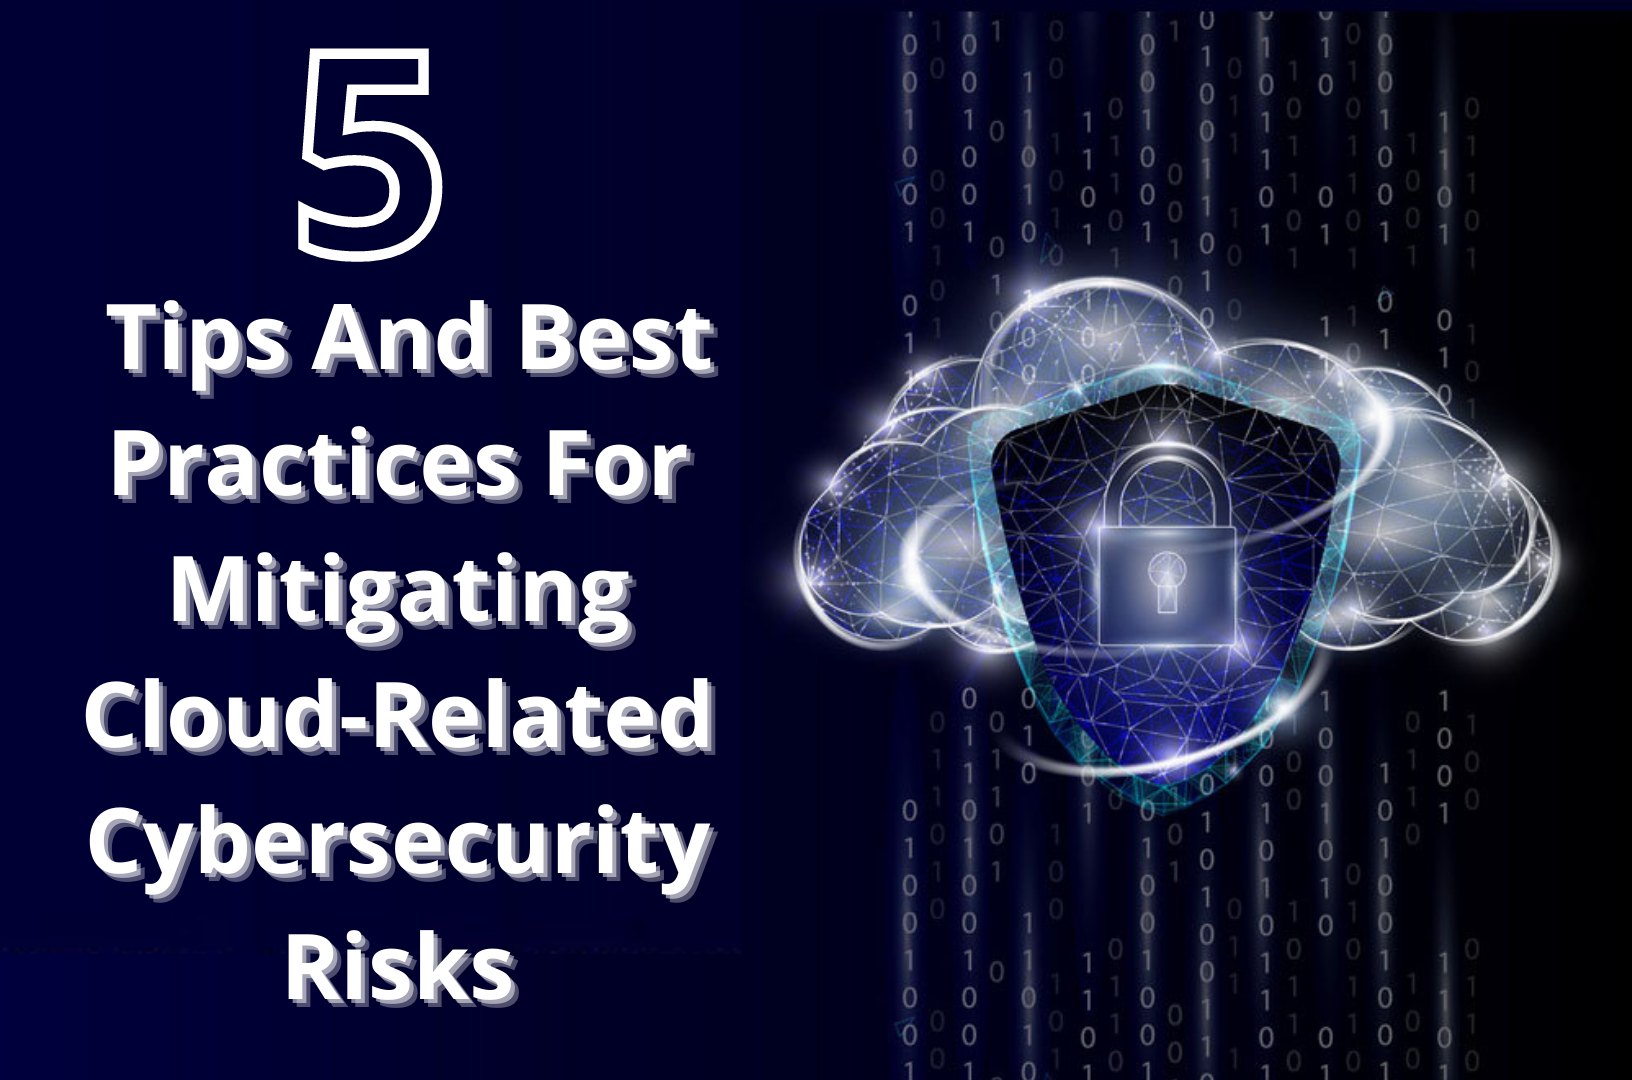 5 Tips And Best Practices For Mitigating Cloud-Related Cybersecurity Risks